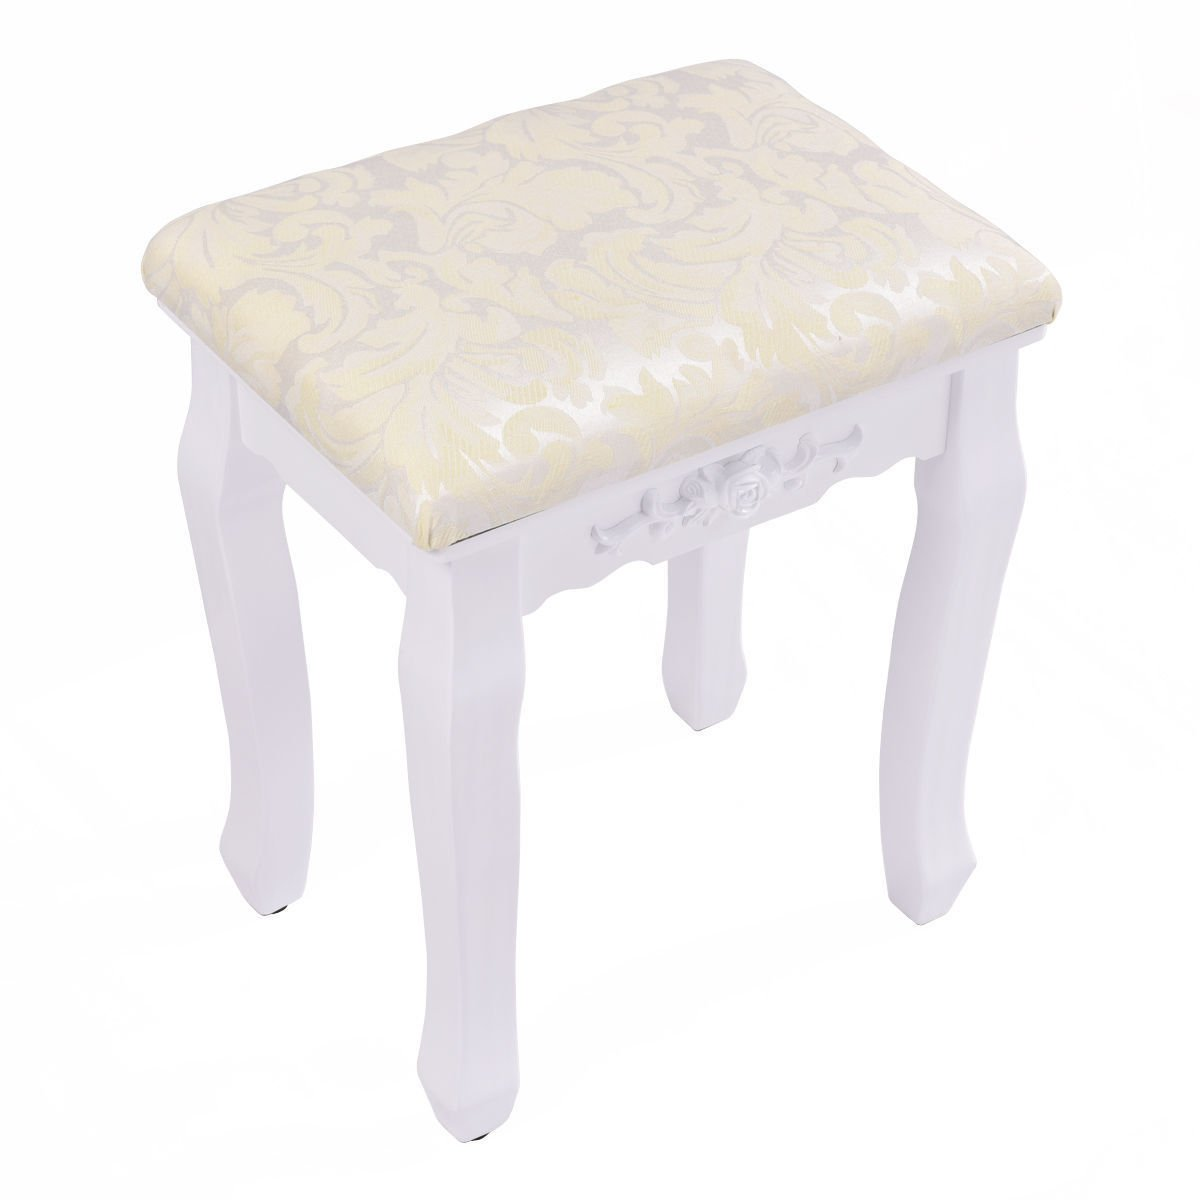 Retro Wave Design Makeup Dressing Stool Pad Cushioned Chair Piano Seat White